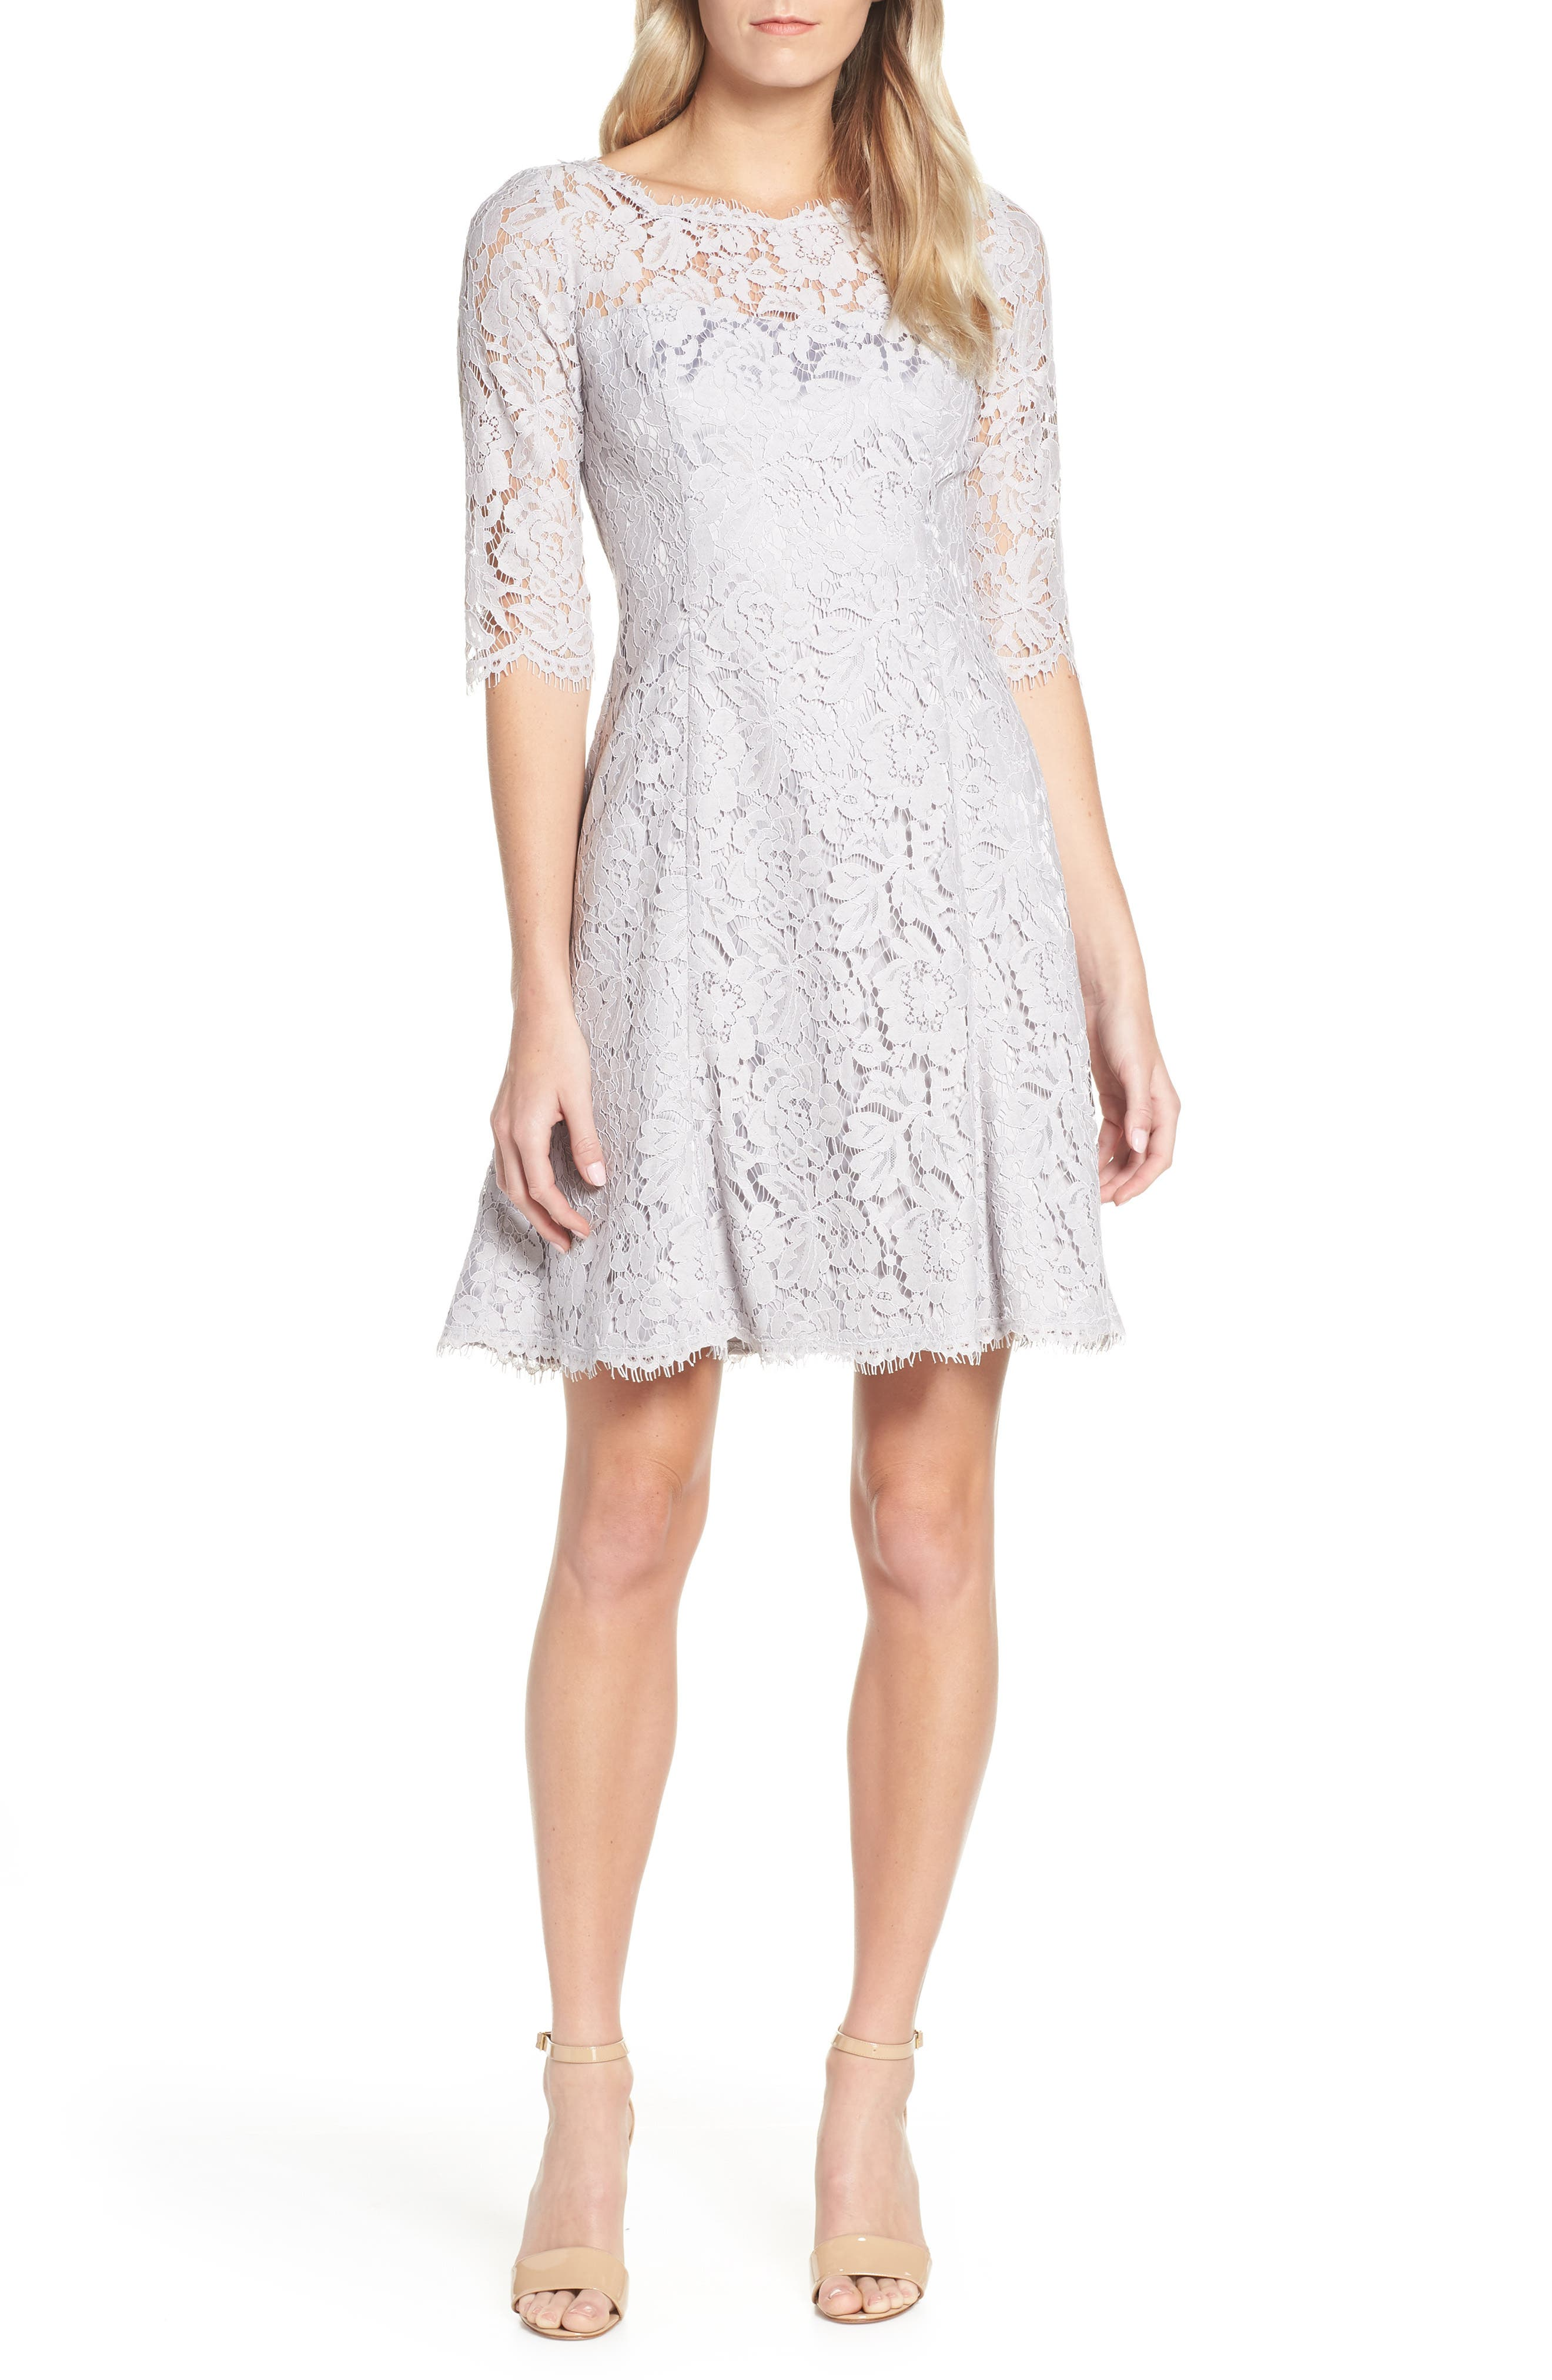 ELIZA J Lace Fit & Flare Cocktail Dress, Main, color, GREY